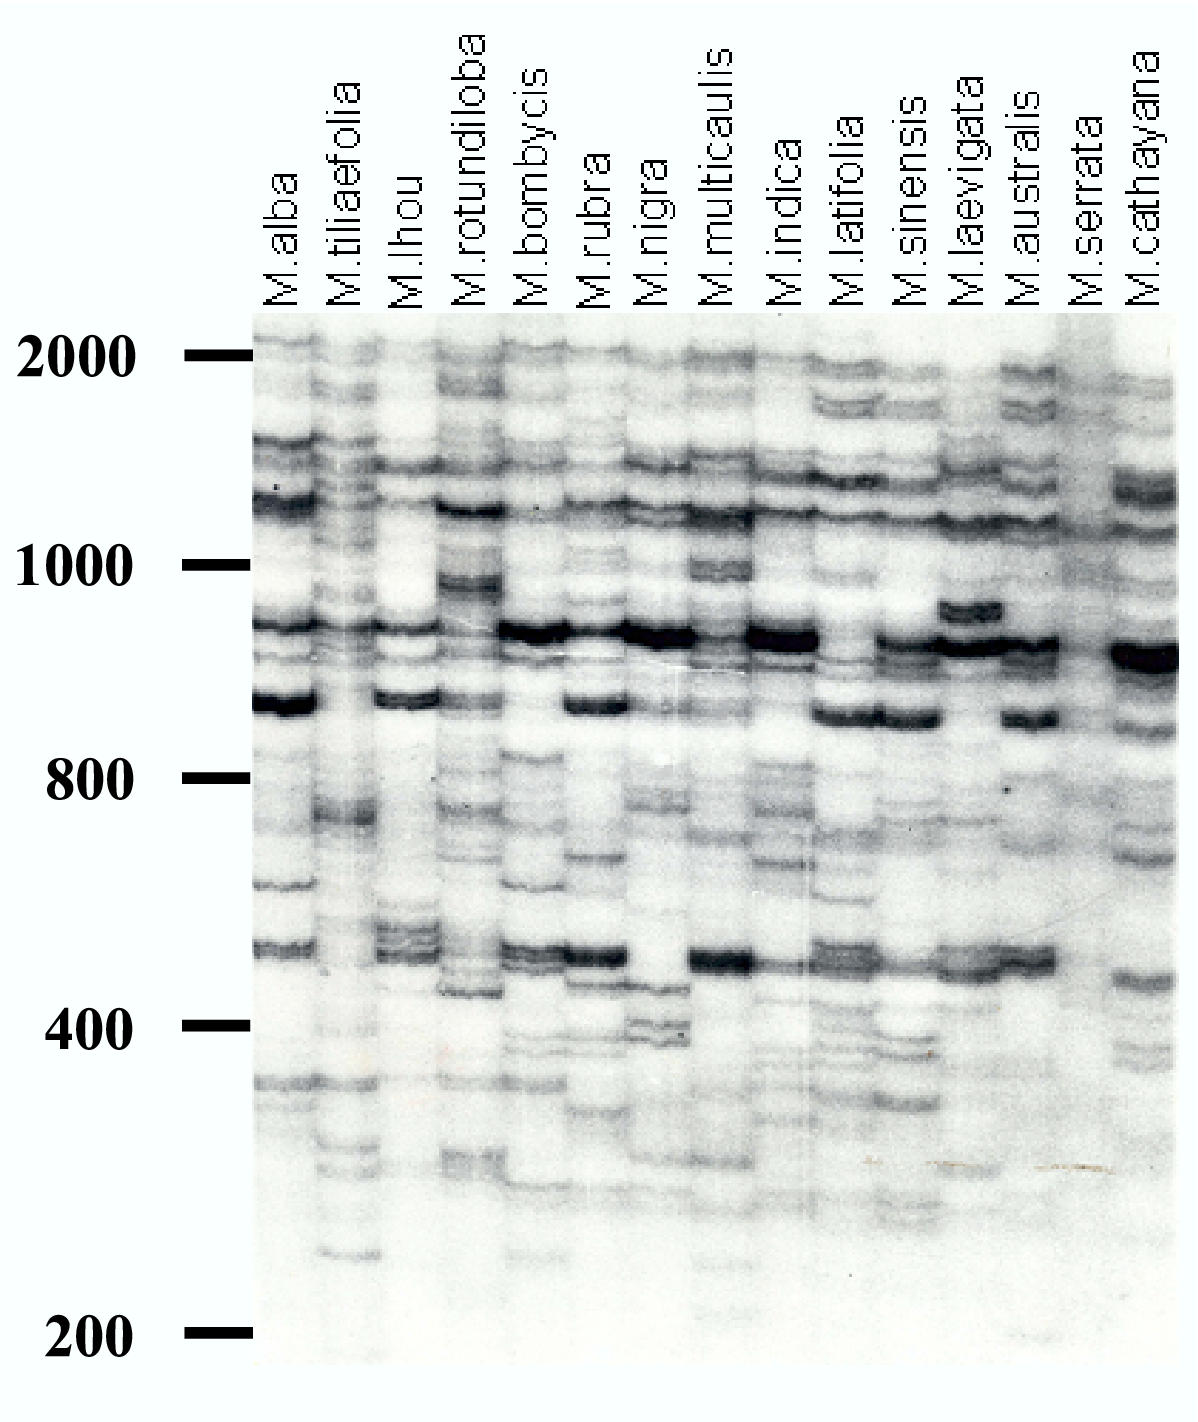 https://static-content.springer.com/image/art%3A10.1186%2F1471-2156-5-1/MediaObjects/12863_2003_Article_173_Fig2_HTML.jpg